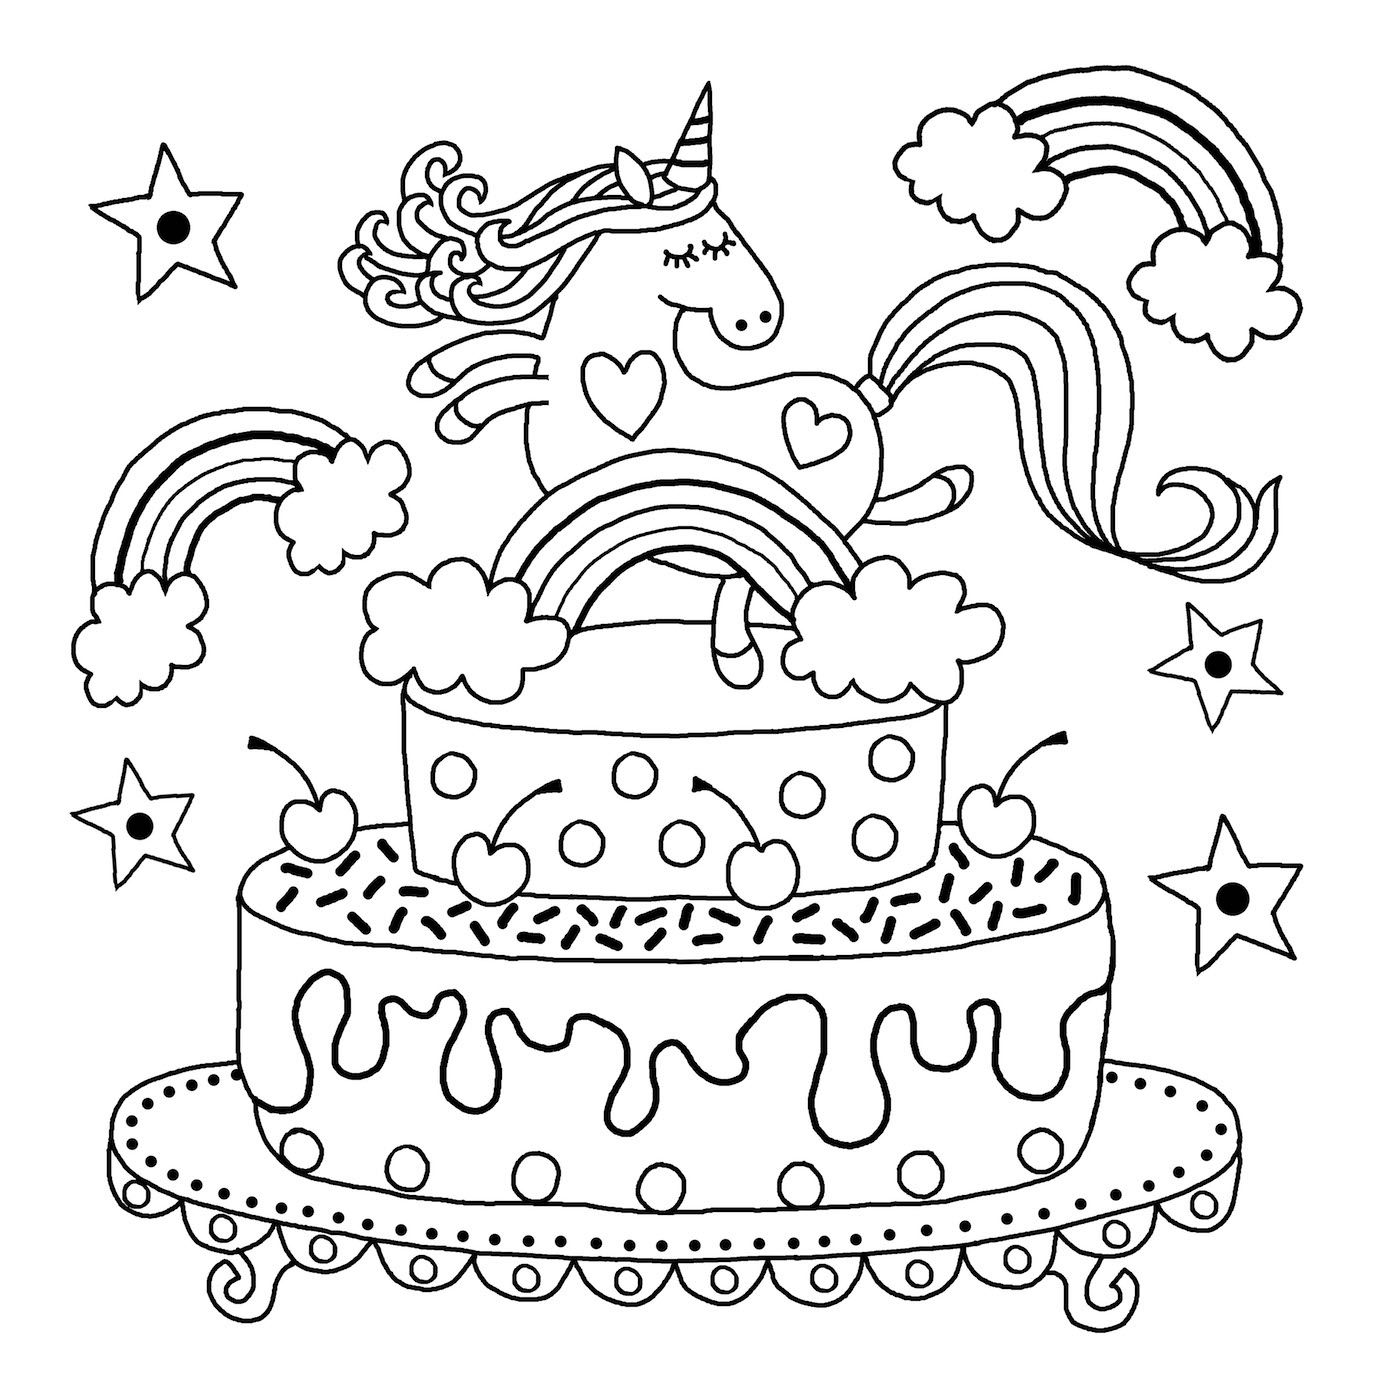 unicorn printable coloring pages unicorn coloring pages to download and print for free coloring pages printable unicorn